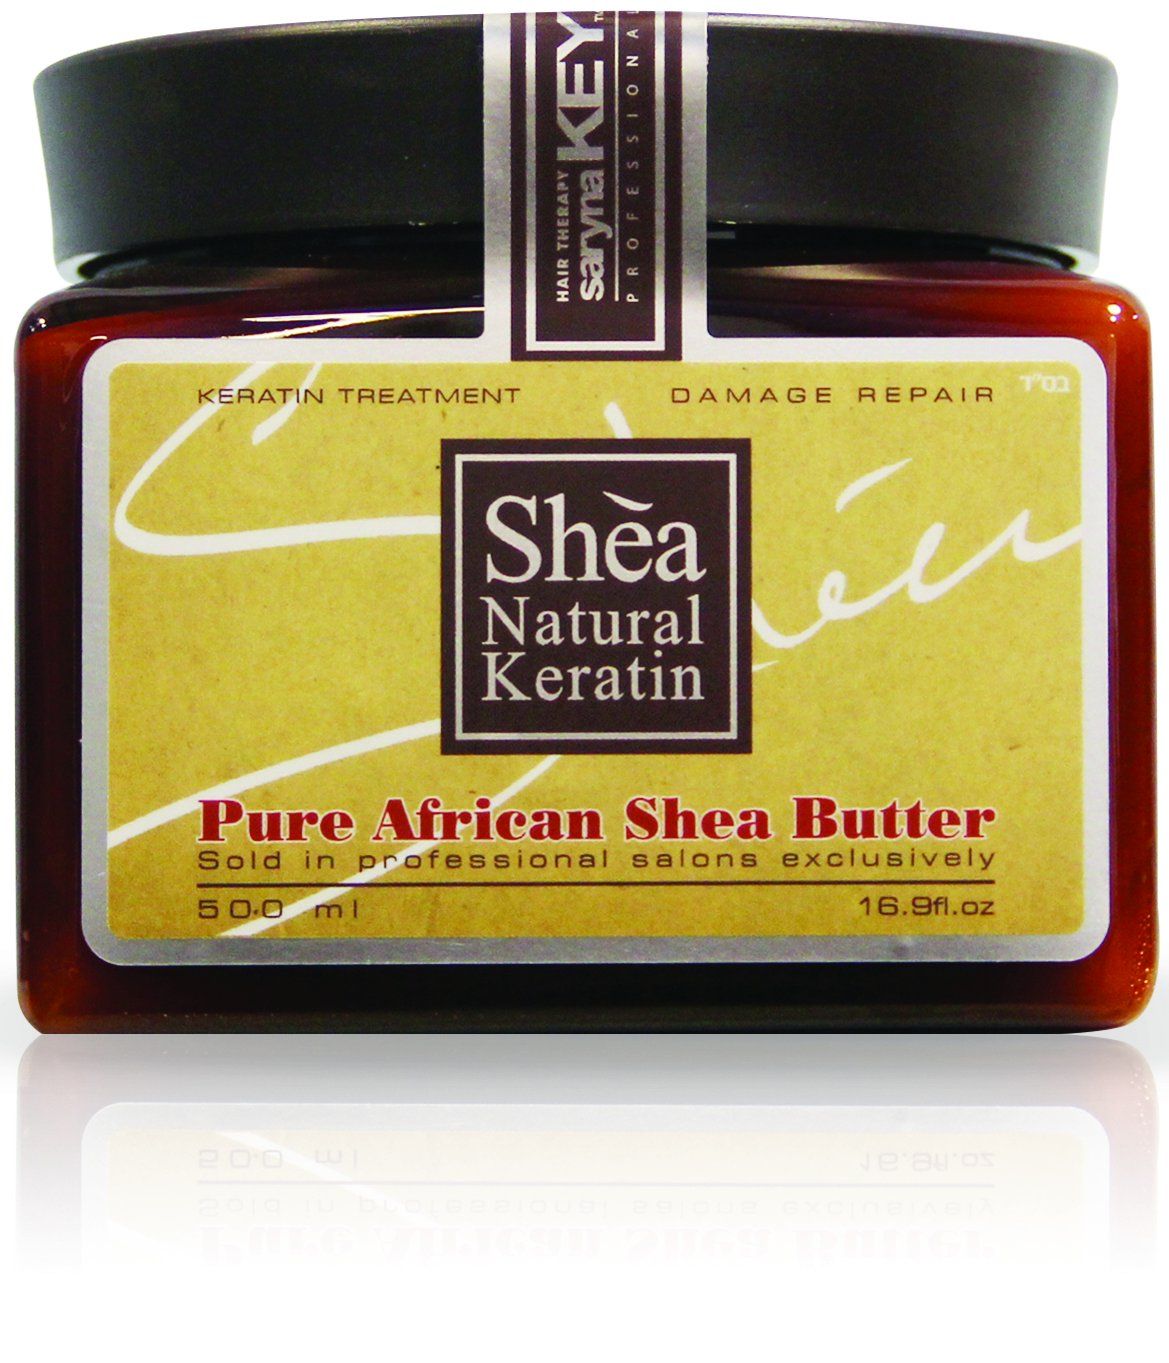 Saryna Key Damage Repair Hair Mask,Pure African Shea Butter 16.9 Ounce PLUS Saryna Key Damage Repair Treatment Special Kit as a GIFT